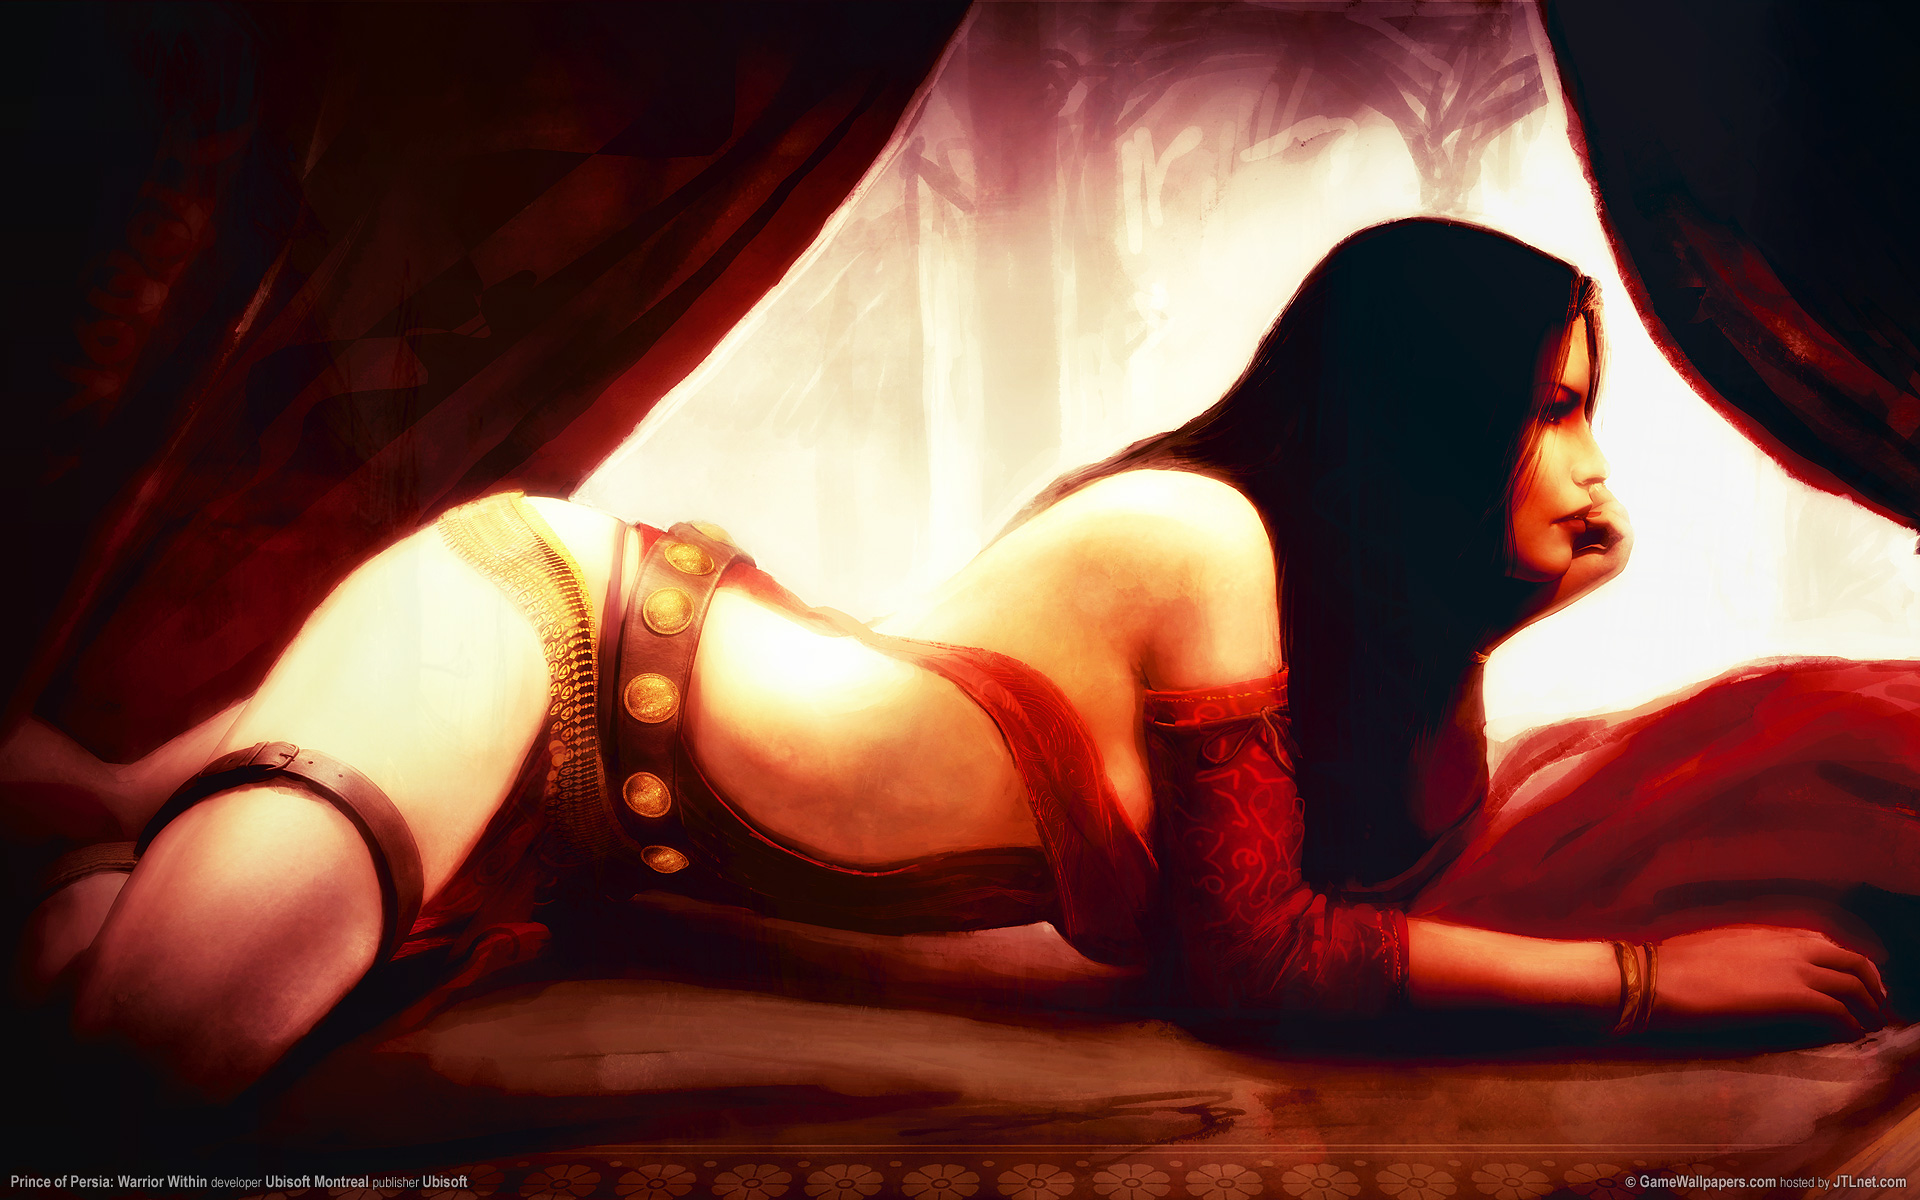 Prince of persia sexy and hot softcore galleries